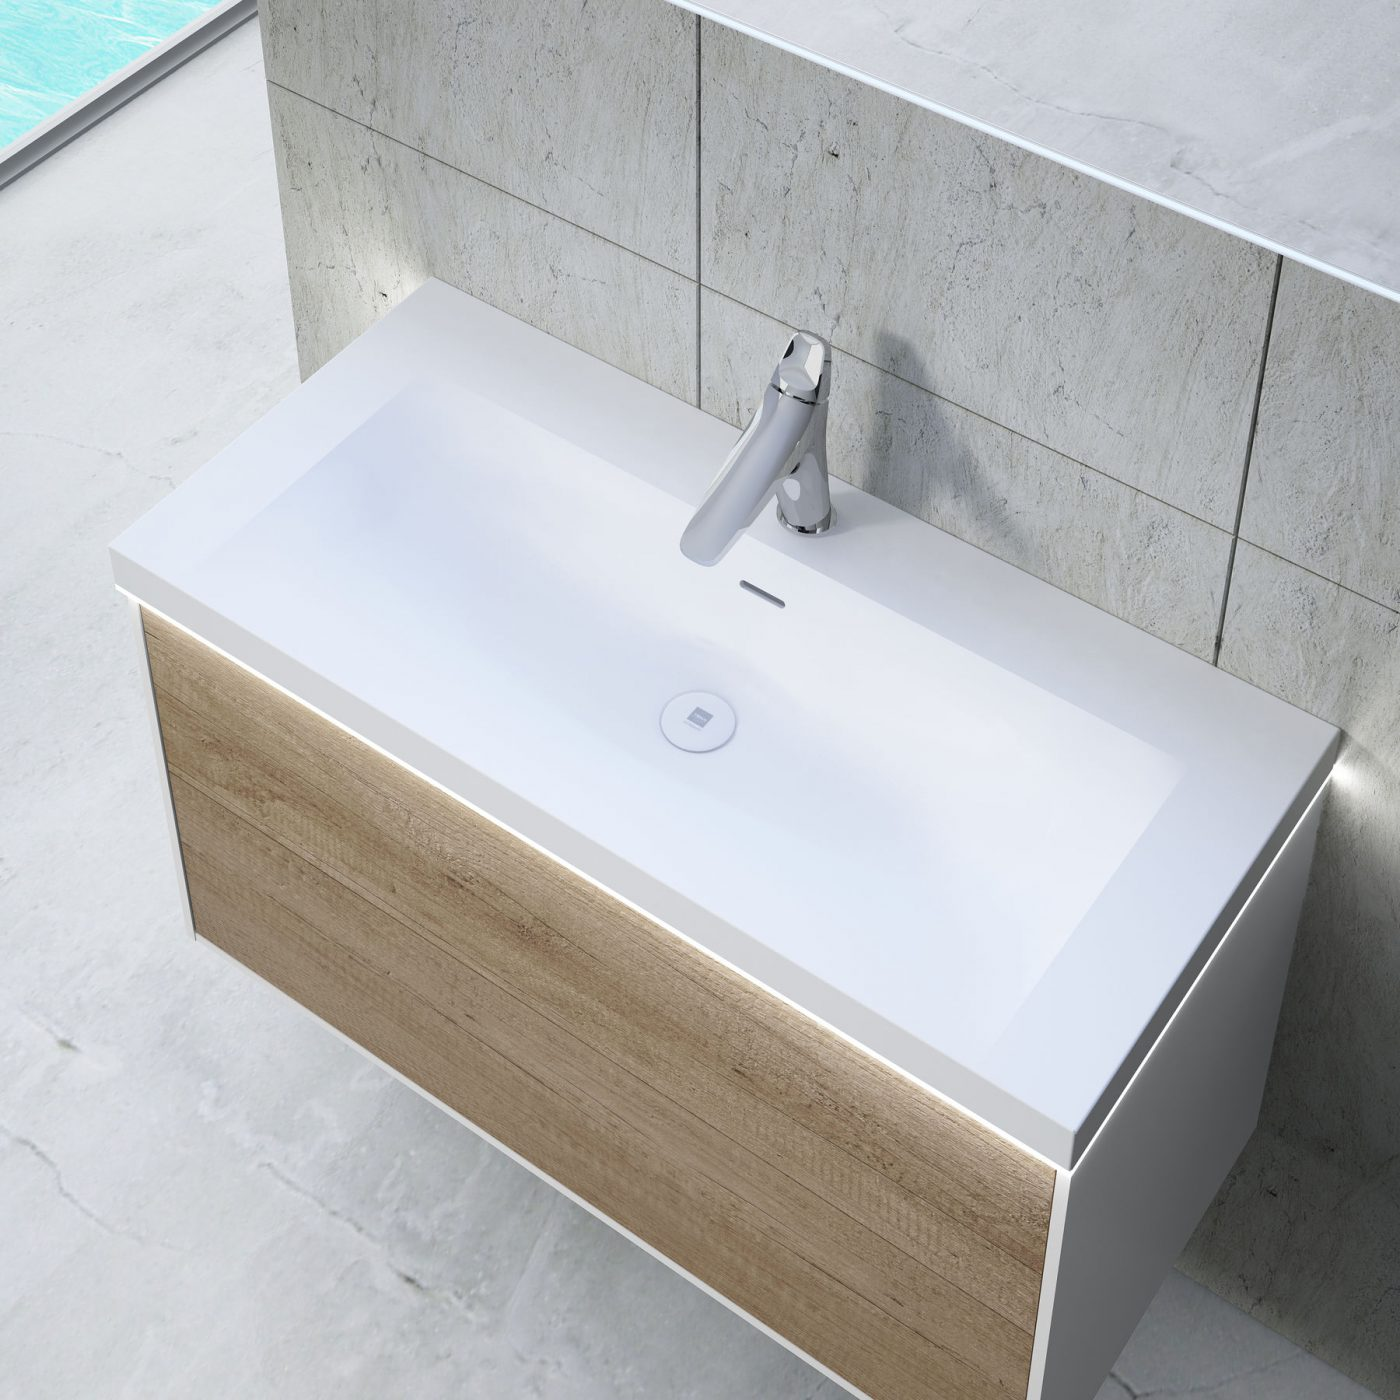 Lavabo de resina integrado con led